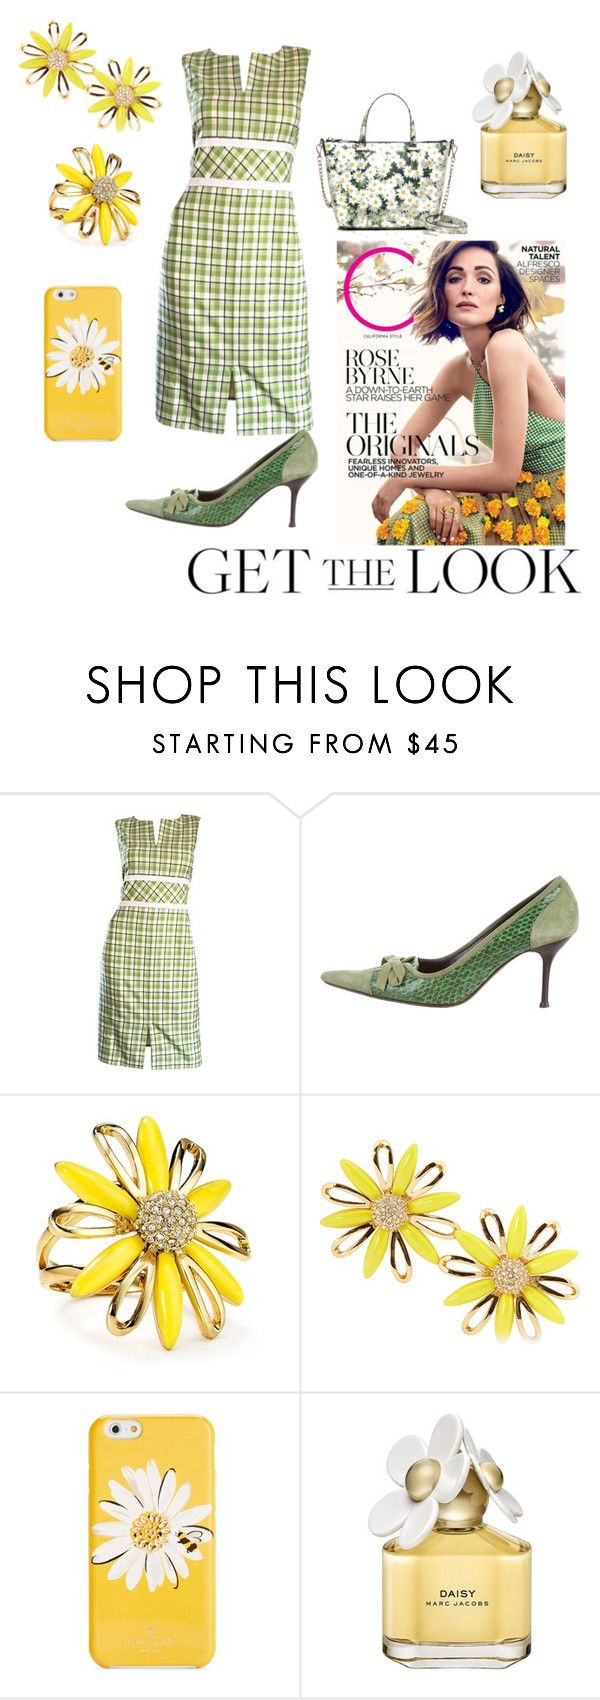 """Rose Byrne Green Checked Dress"" by mel-c-n on Polyvore featuring Oscar de la Renta, Dolce&Gabbana, Kate Spade, Marc Jacobs, GetTheLook, polyvorecontest and rosebyrne"